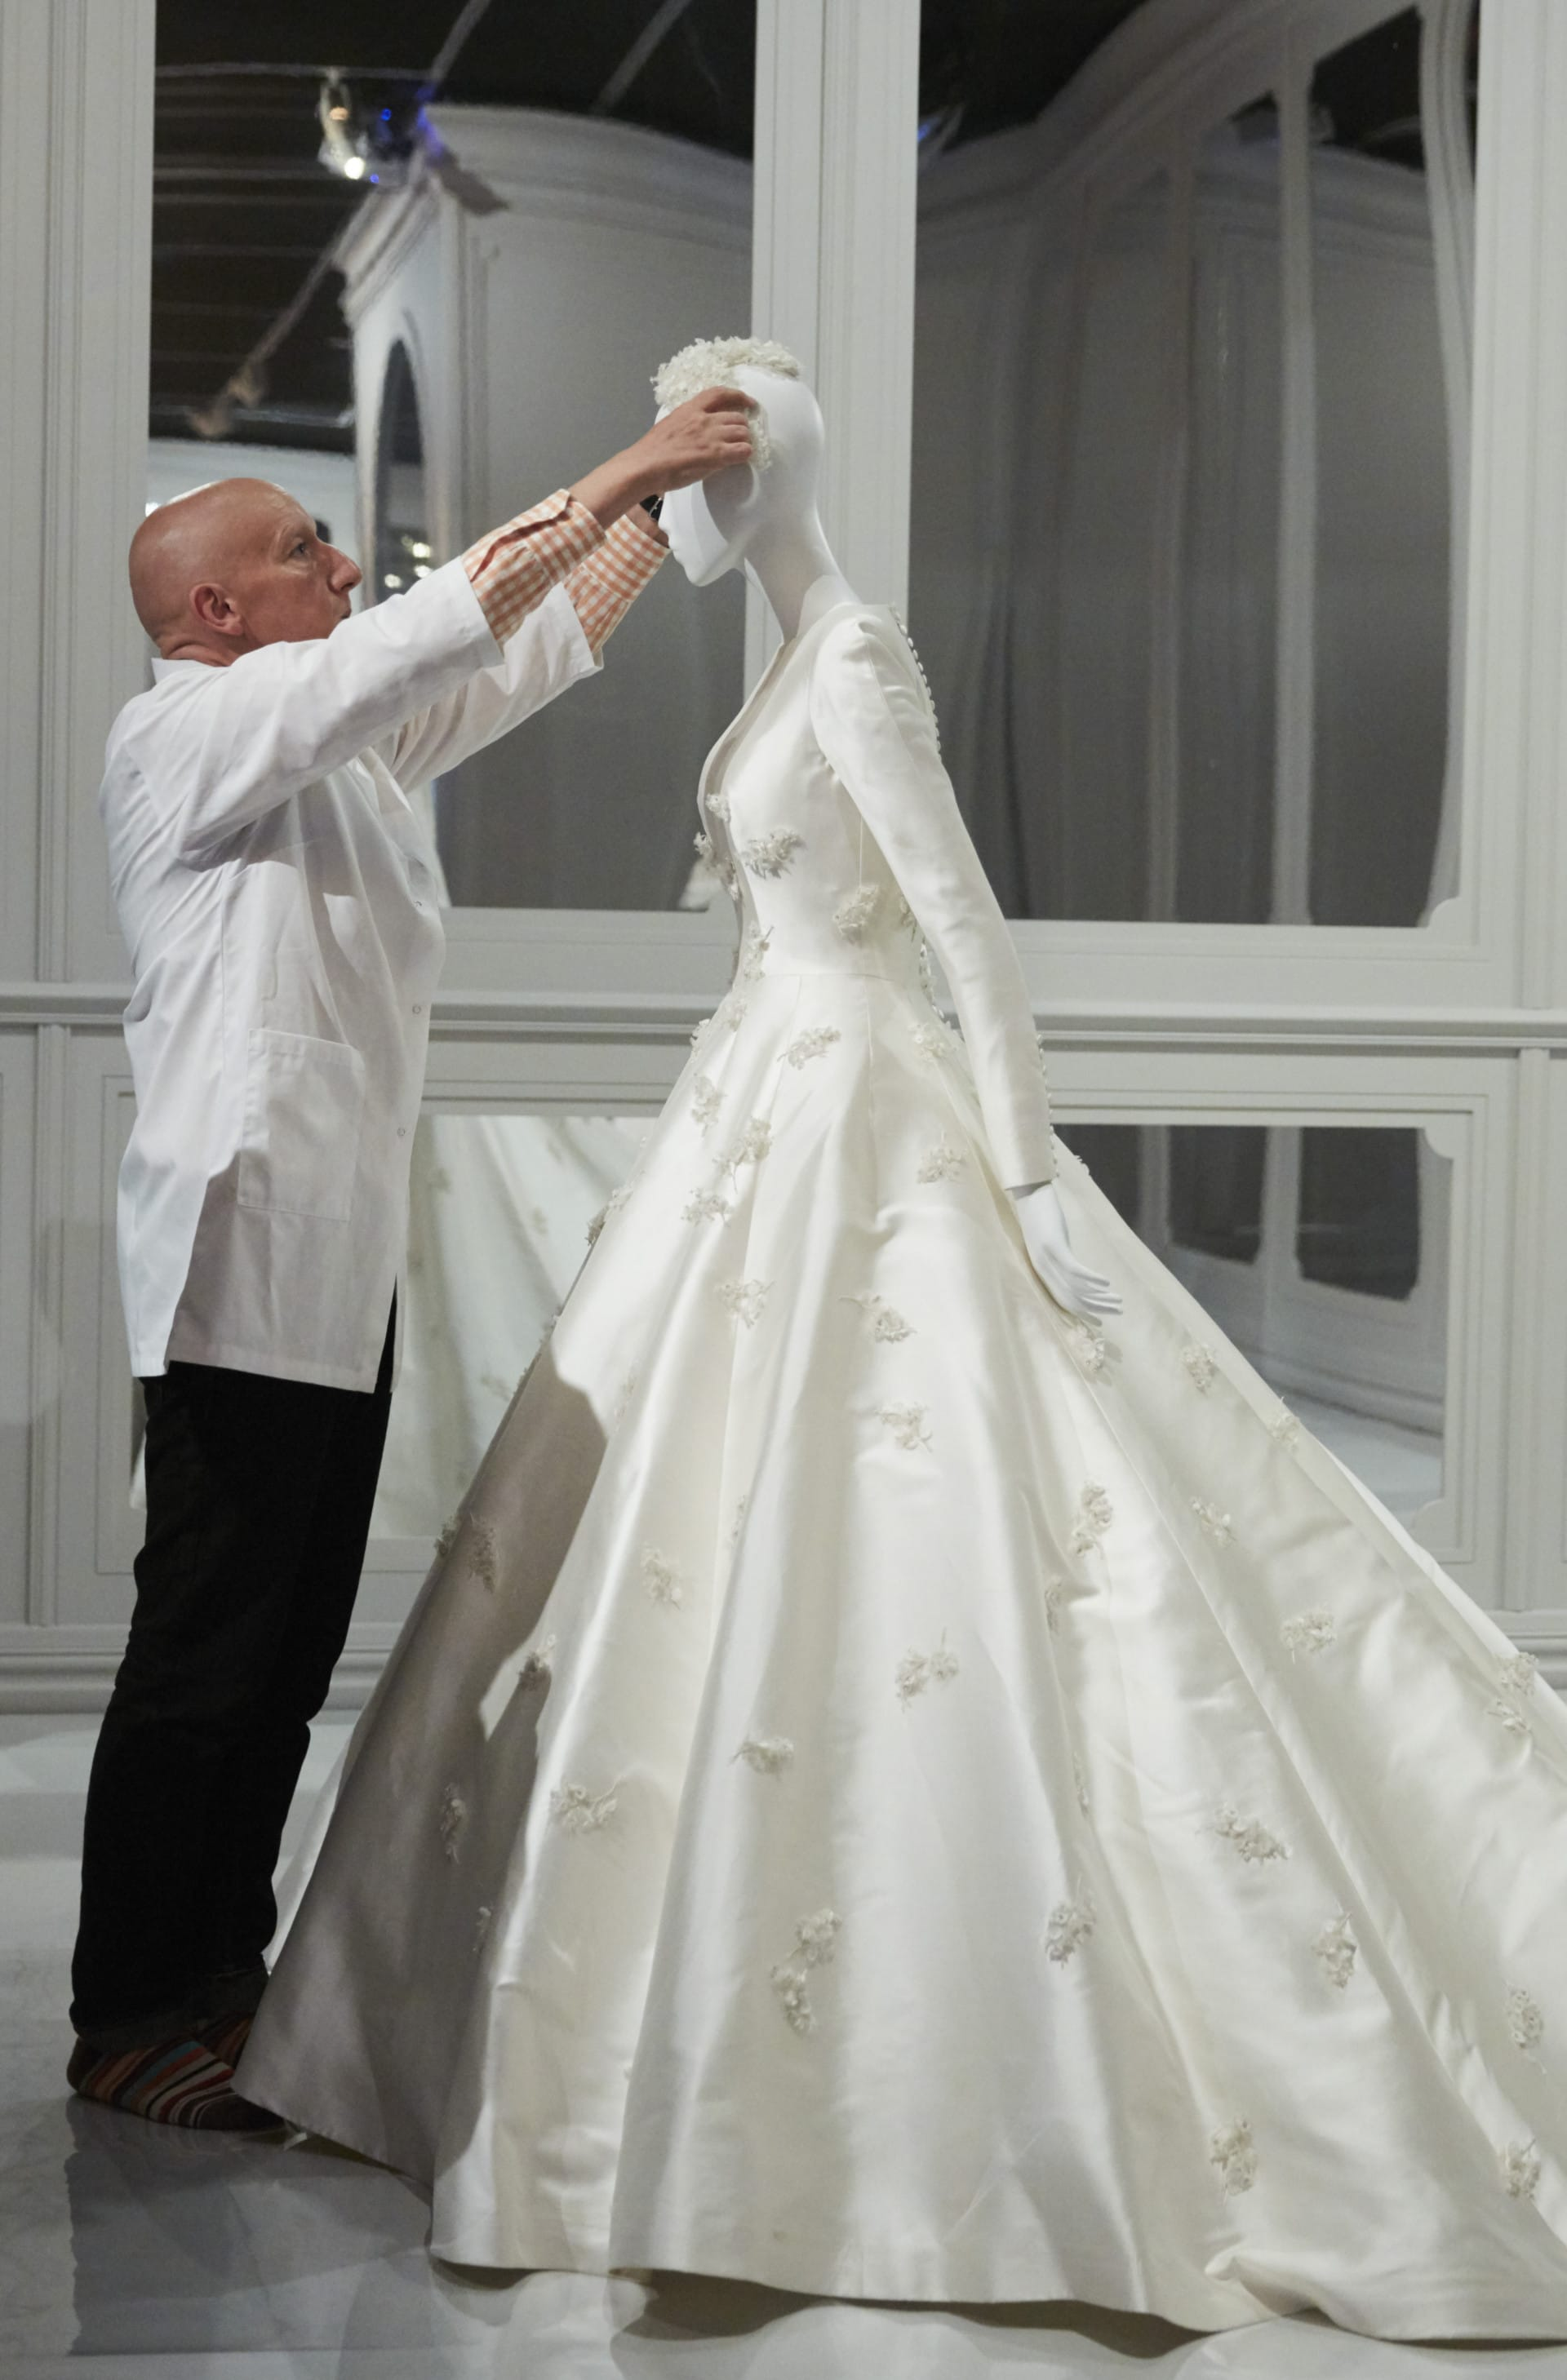 Miranda Kerrs Dior Wedding Dress Just Landed At The